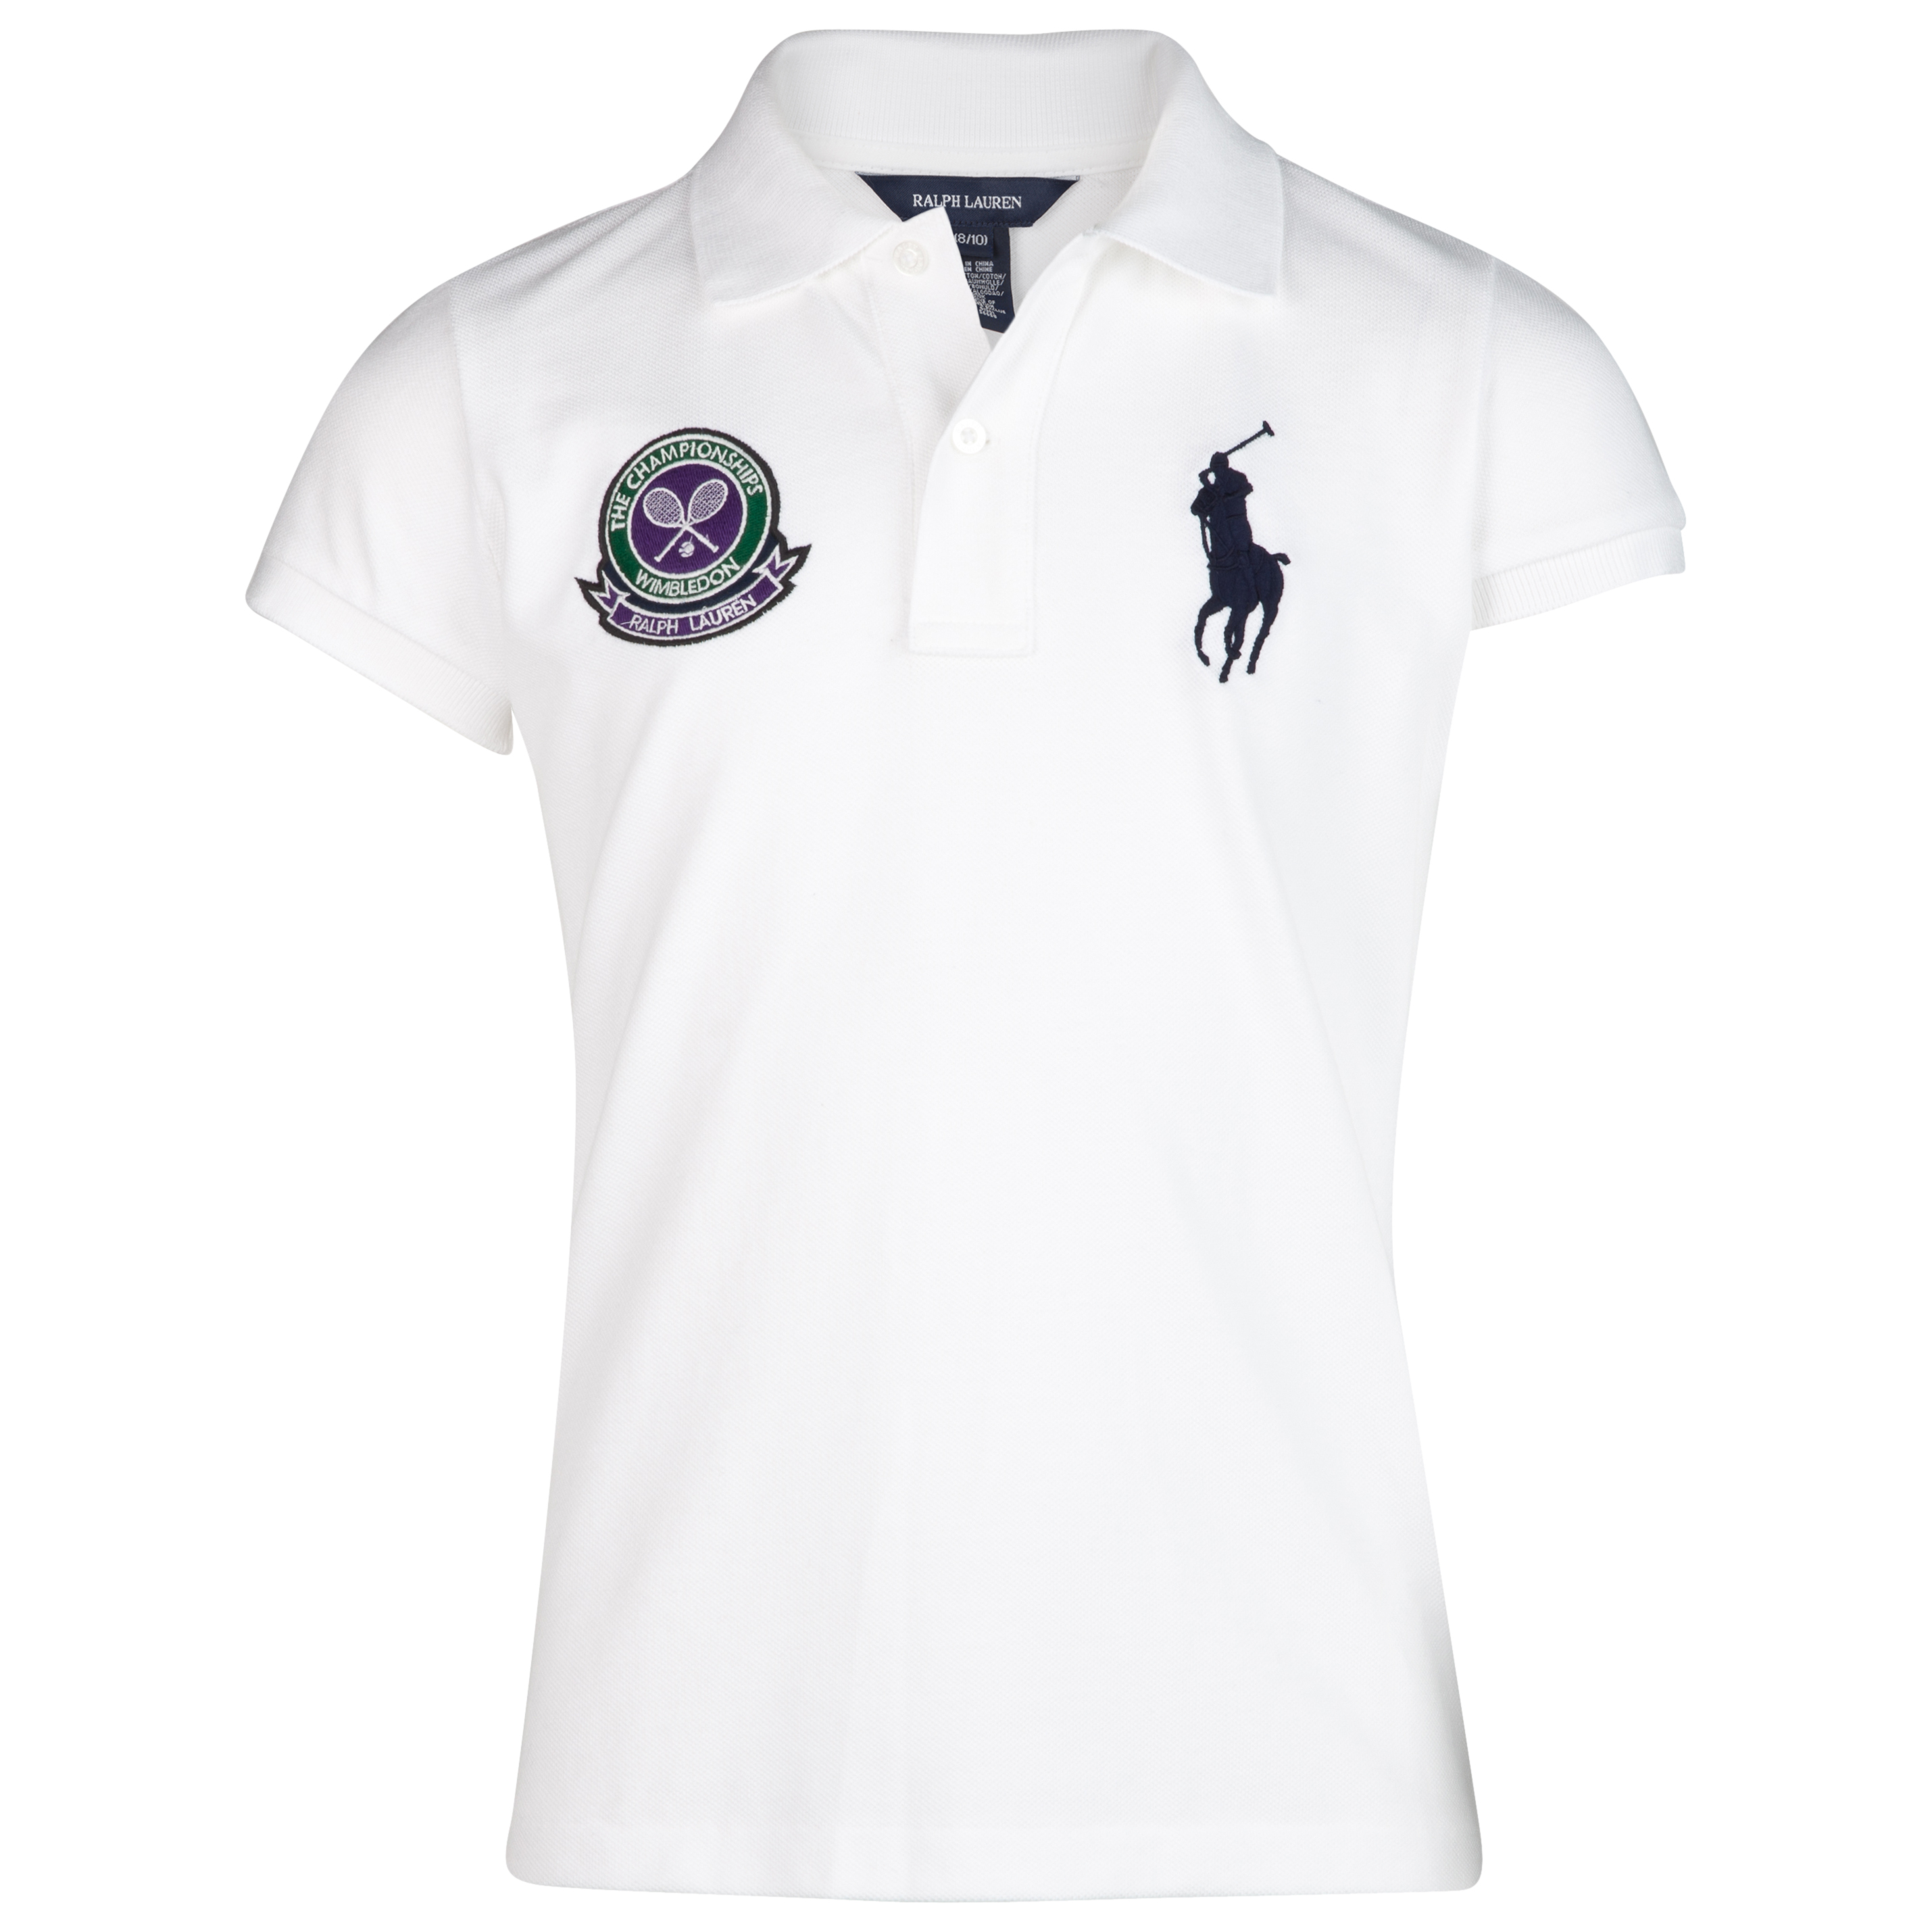 Polo Ralph Lauren Wimbledon Big PP Mesh Polo - White - Girls